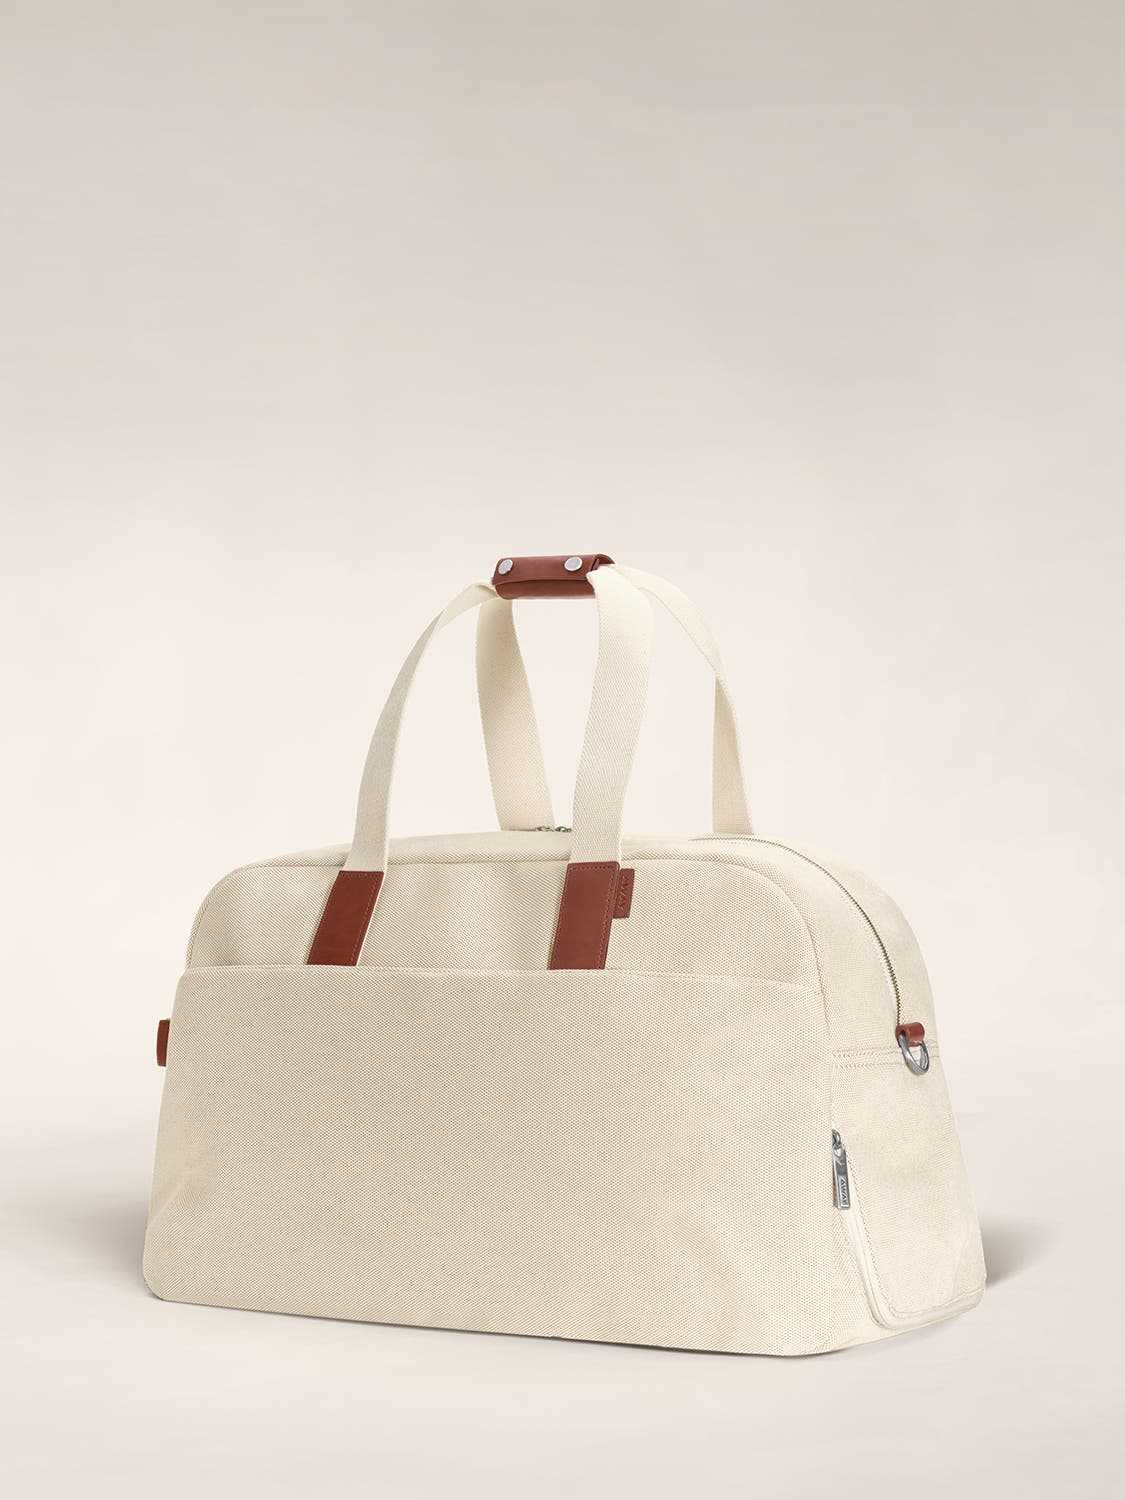 Angled view of a sand color canvas duffle bag with brown leather trim.